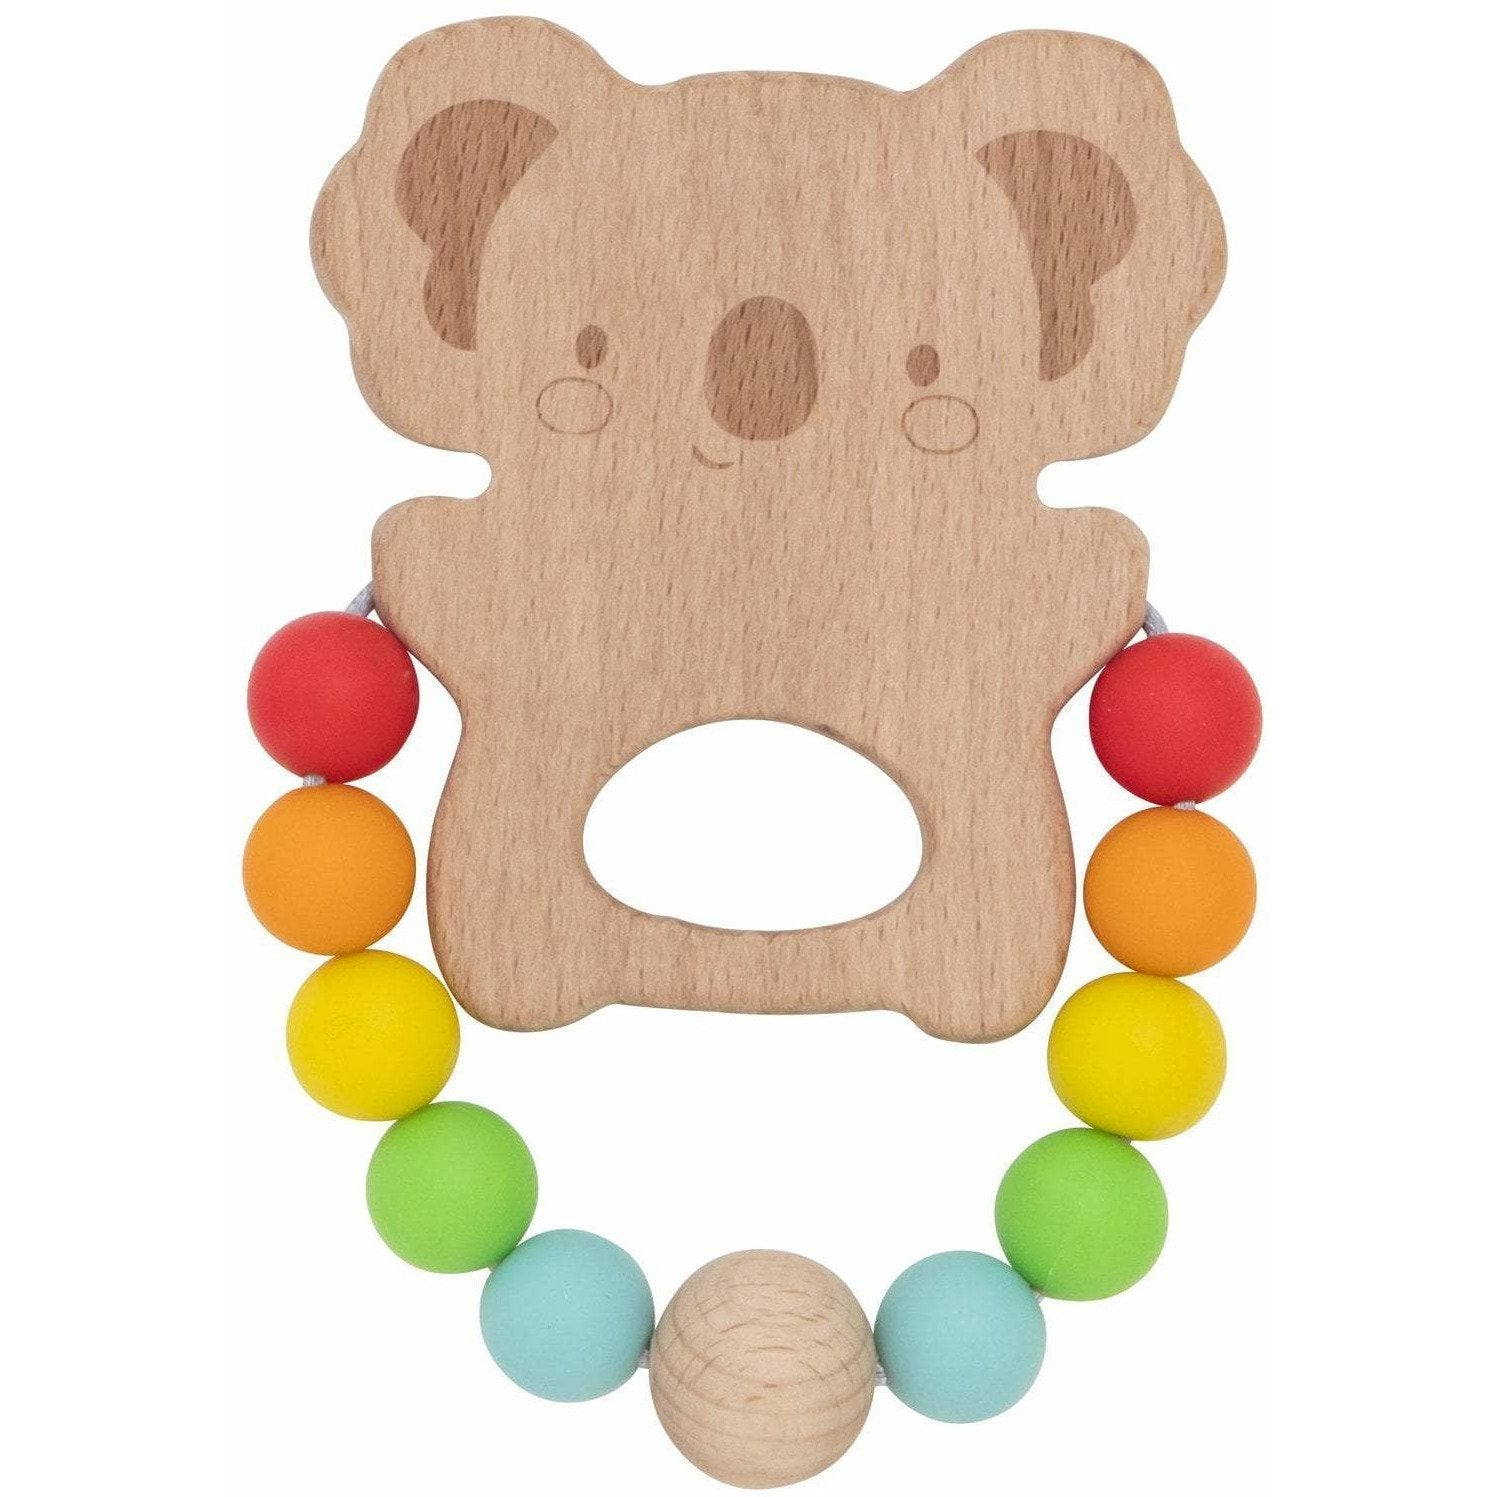 Wooden Silicone Koala Teether - Tiger Tribe - Hugs For Kids